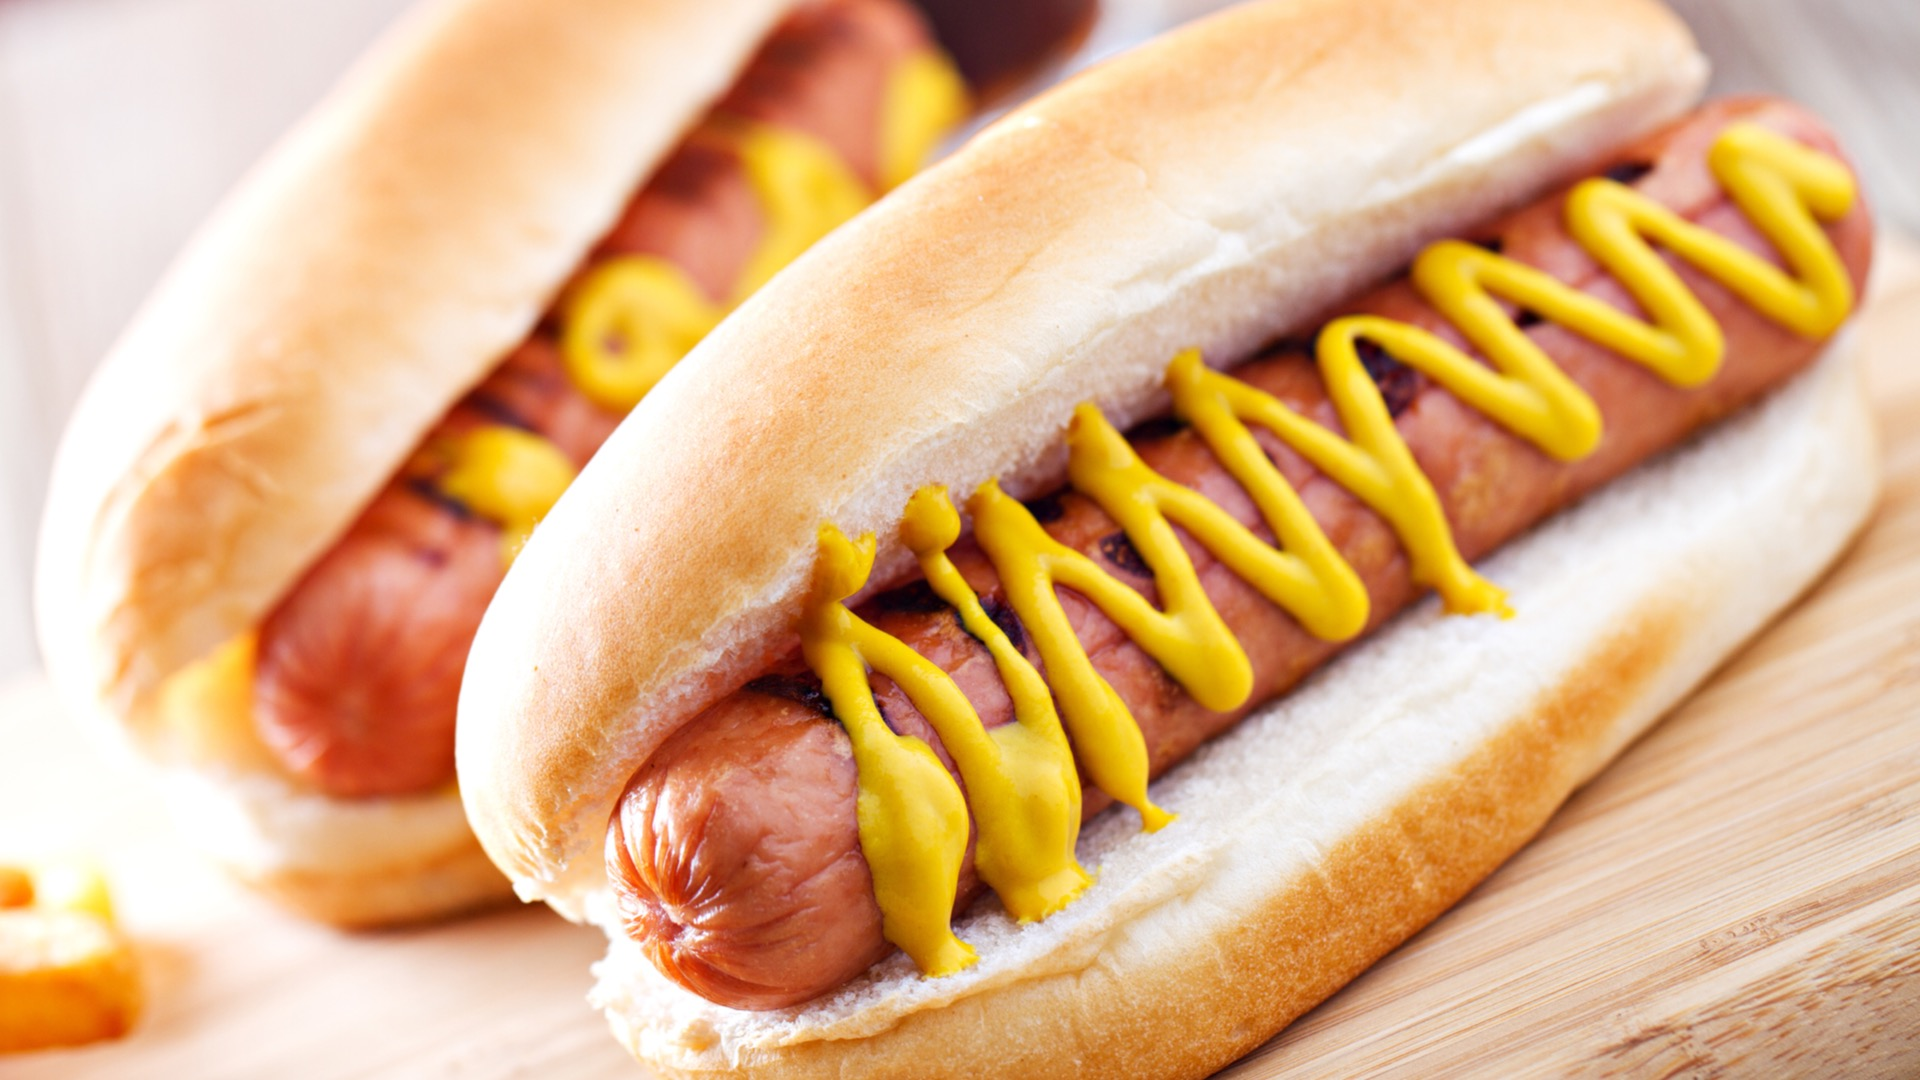 A hot dog with mustard - best hot dogs in Baltimore